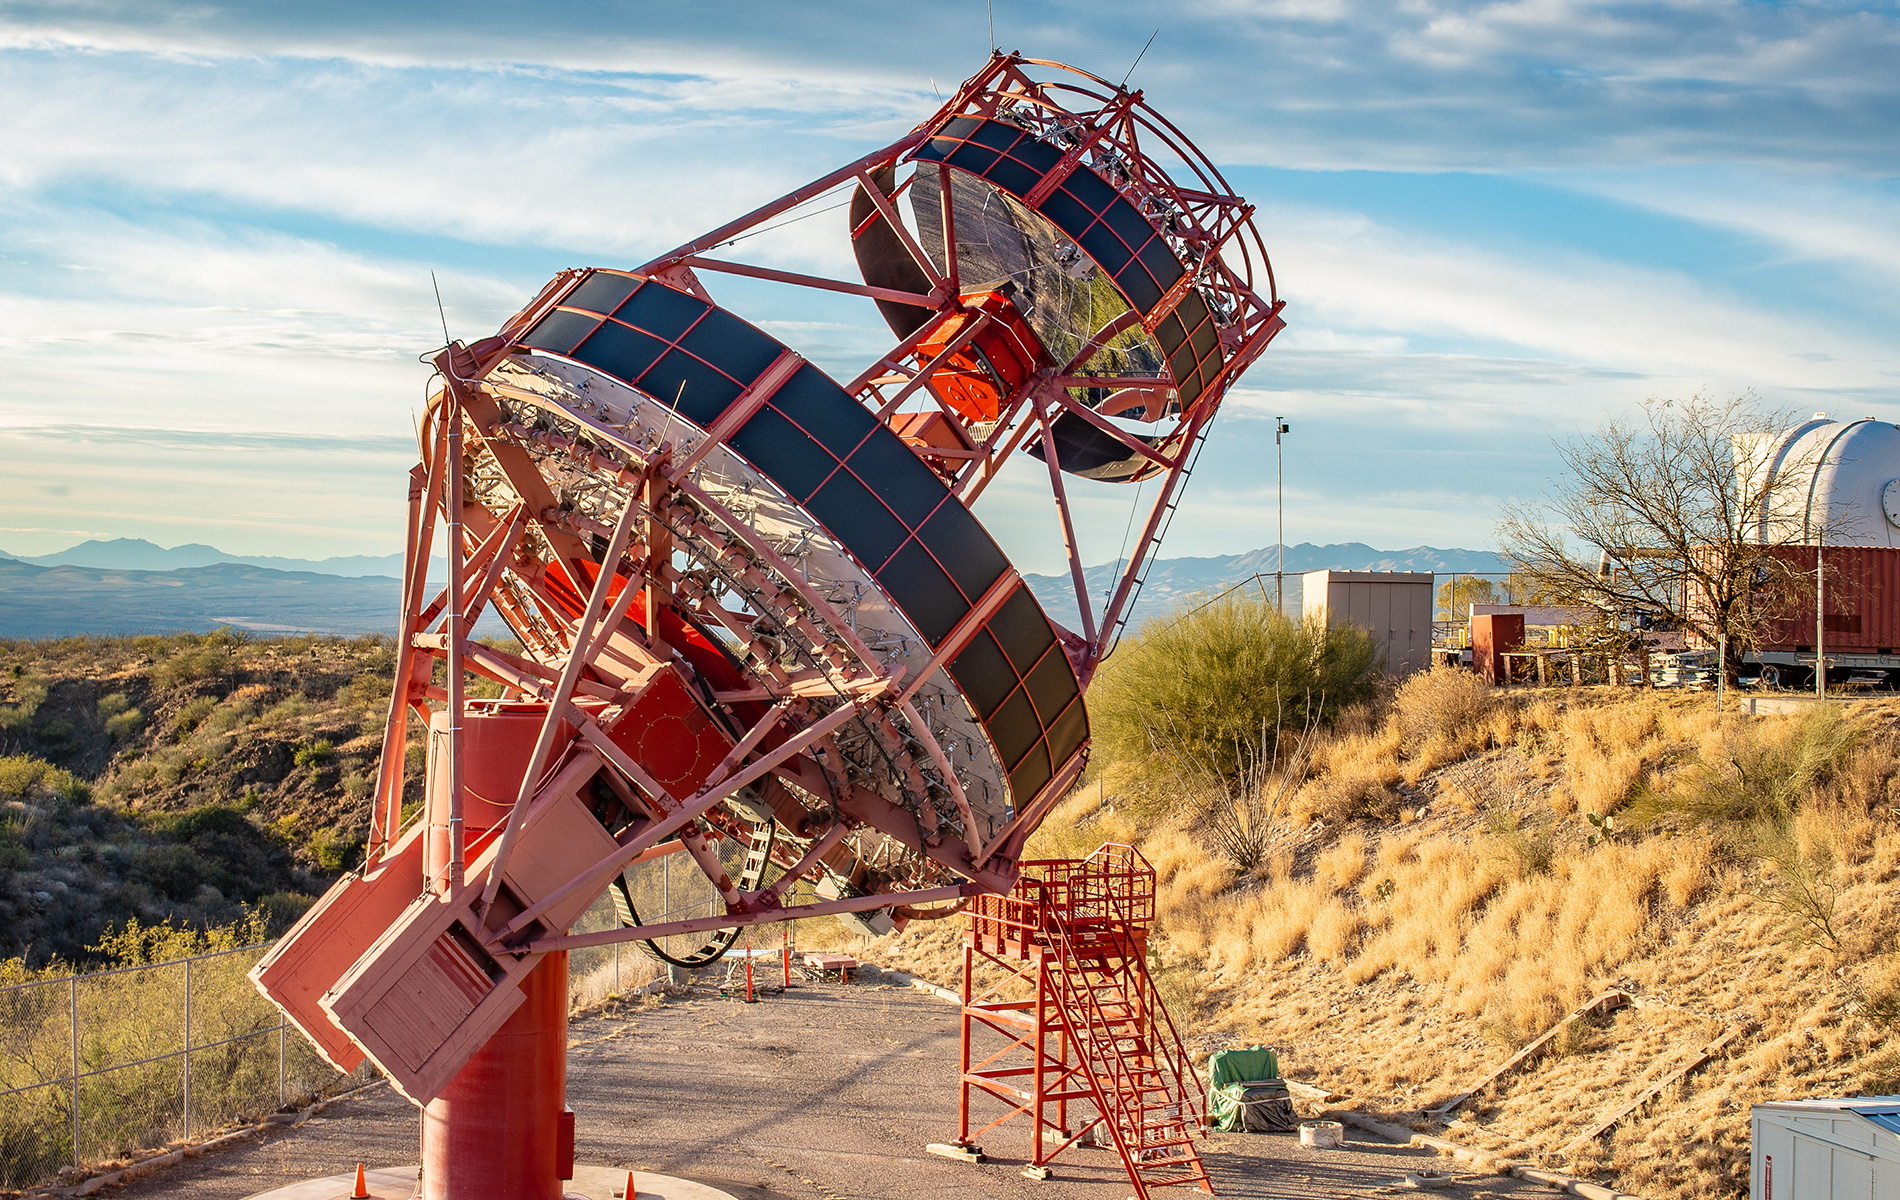 A large red telescope with desert landscape in the background